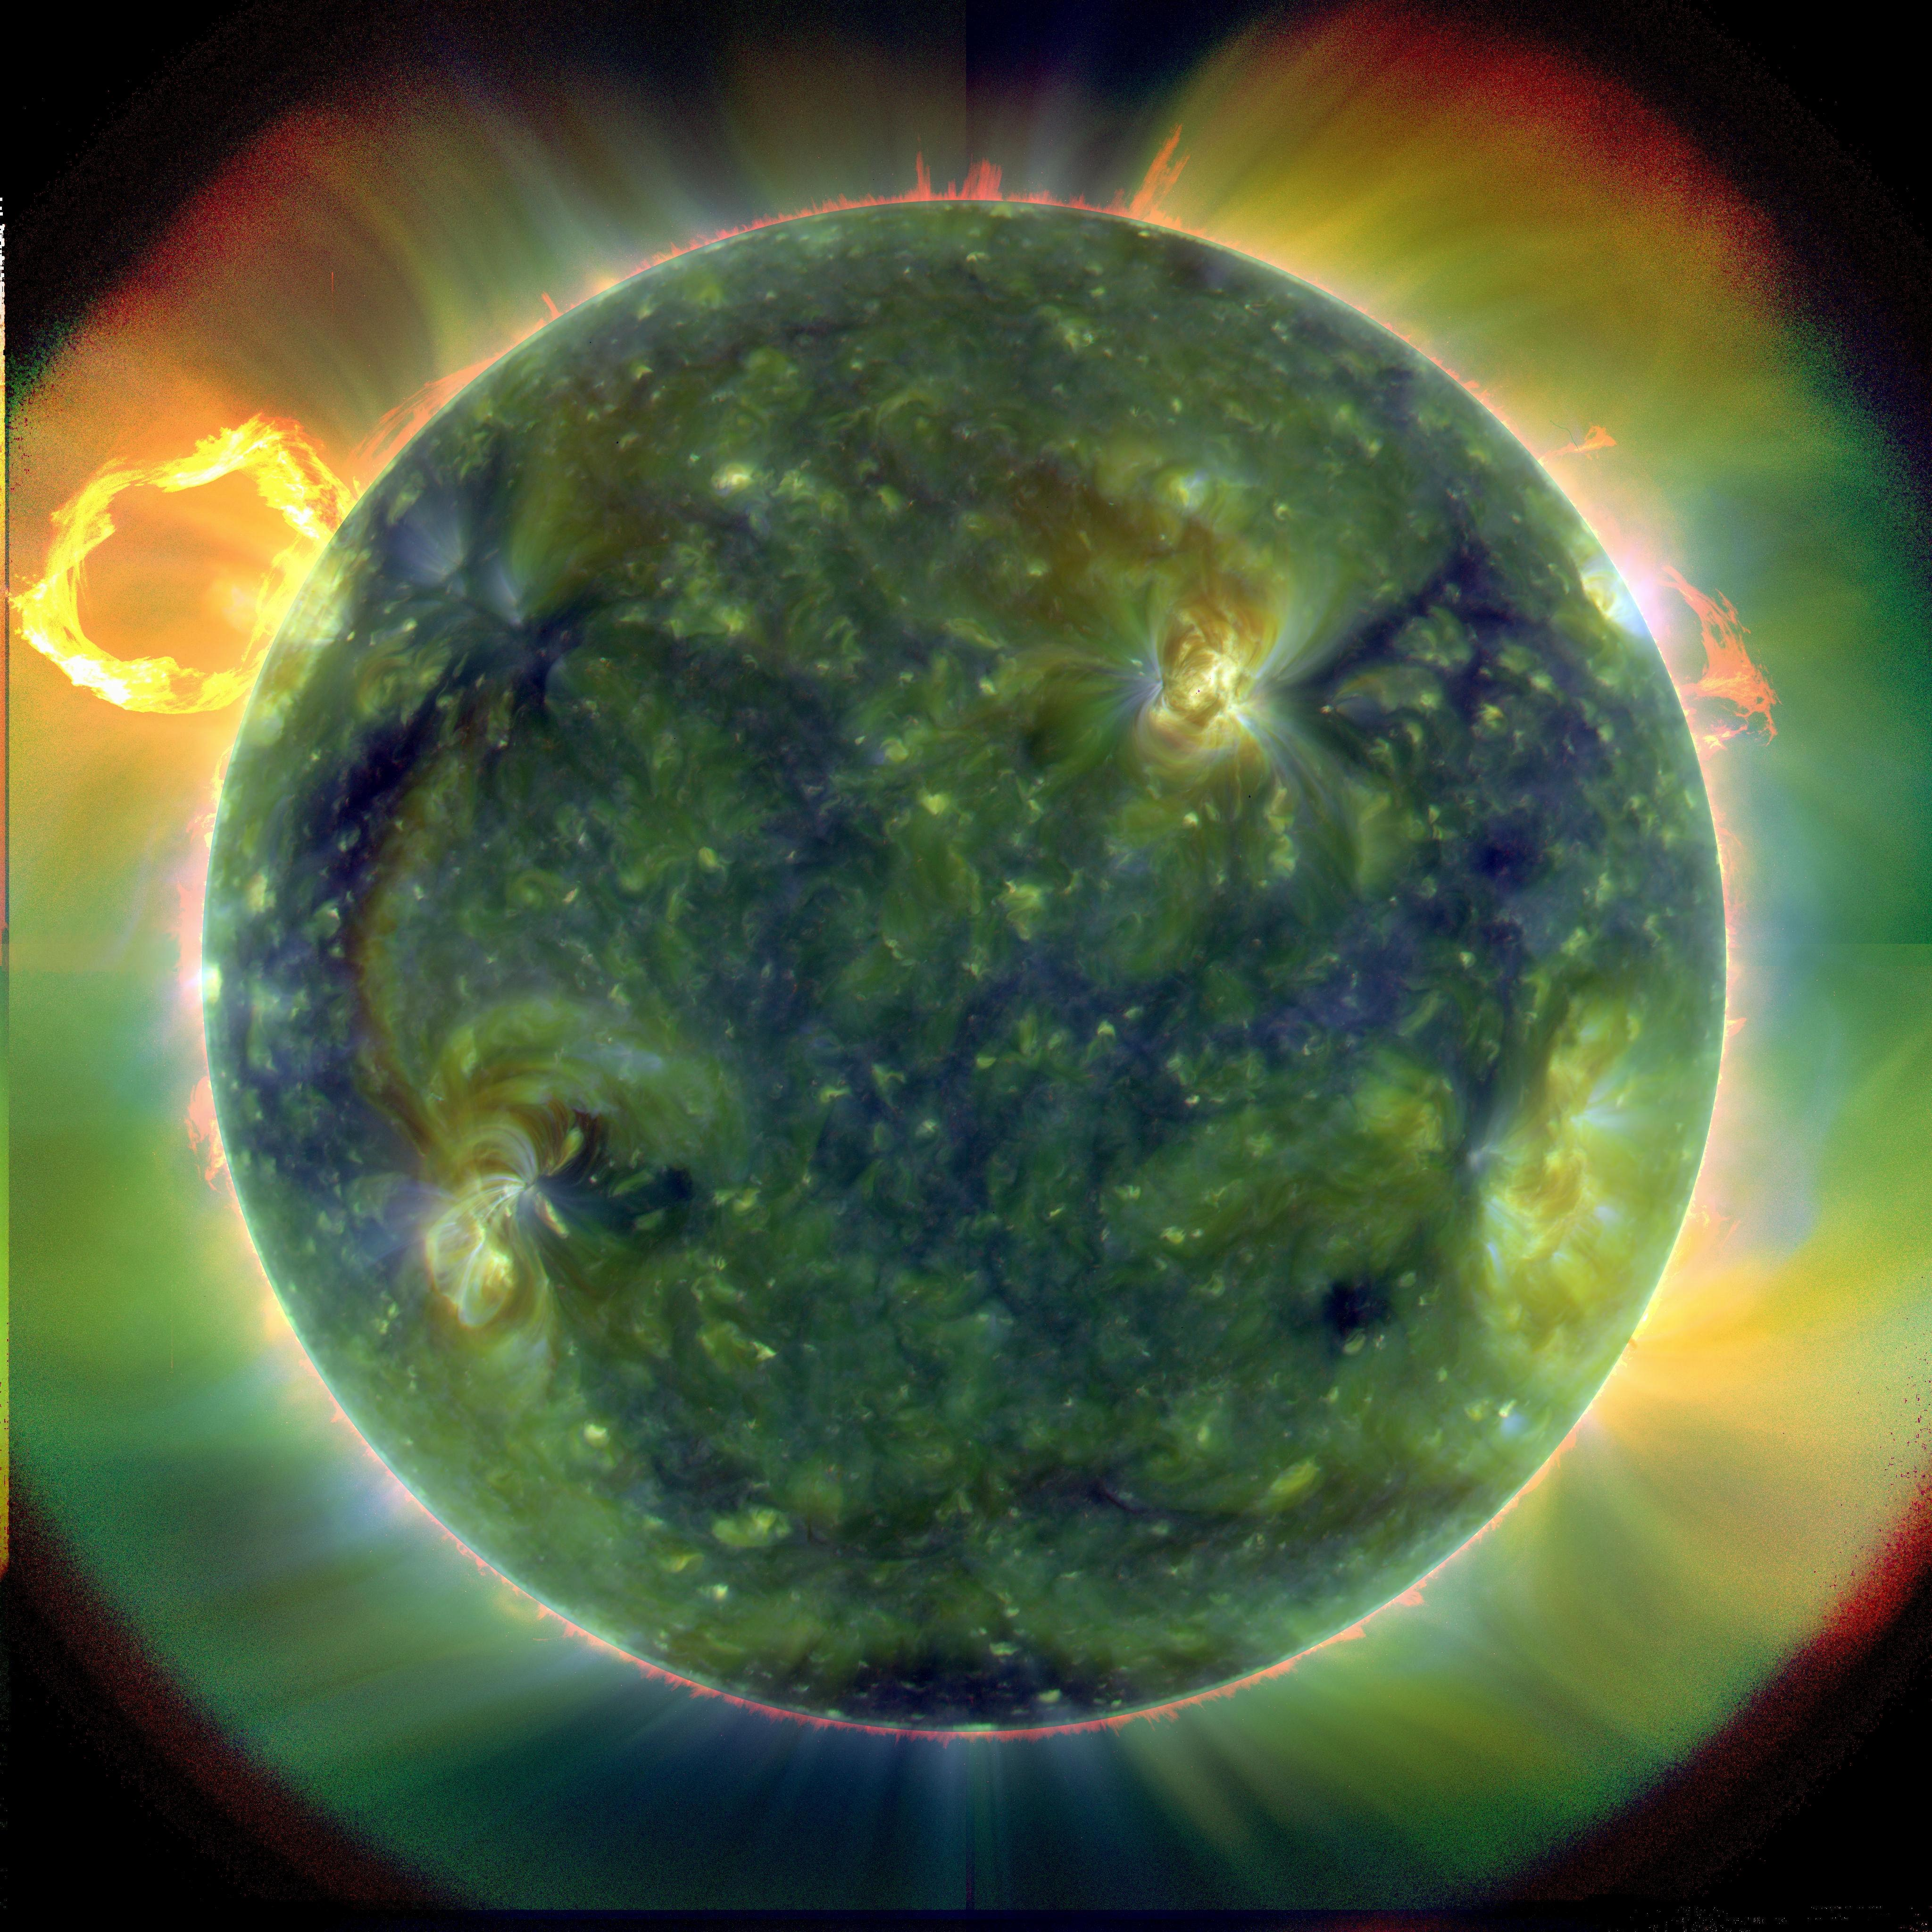 SDO First Light Composite Image from March 30, 2010